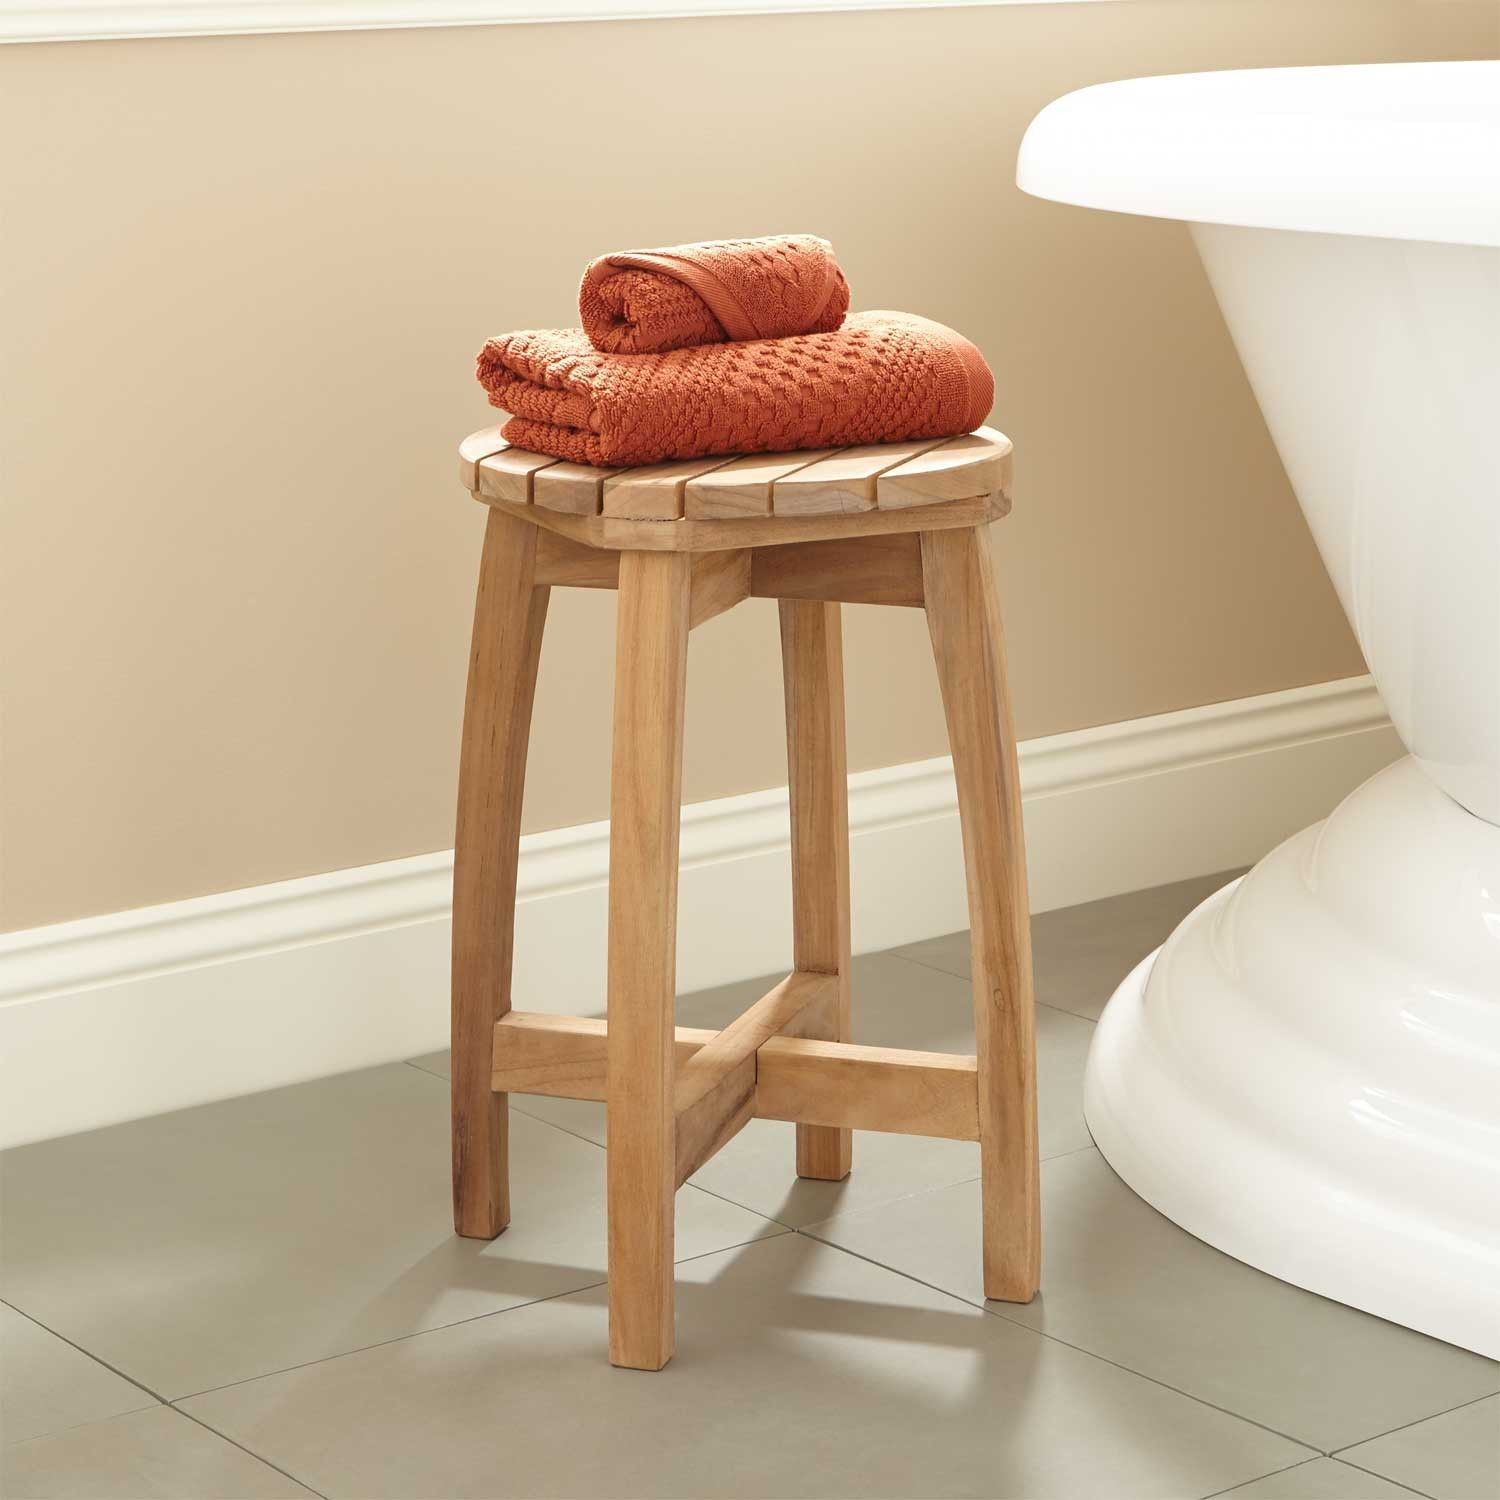 with stools white for seats rolling seat shower stool bench chair bathroom benches elderly bathtub bath and foldable padded